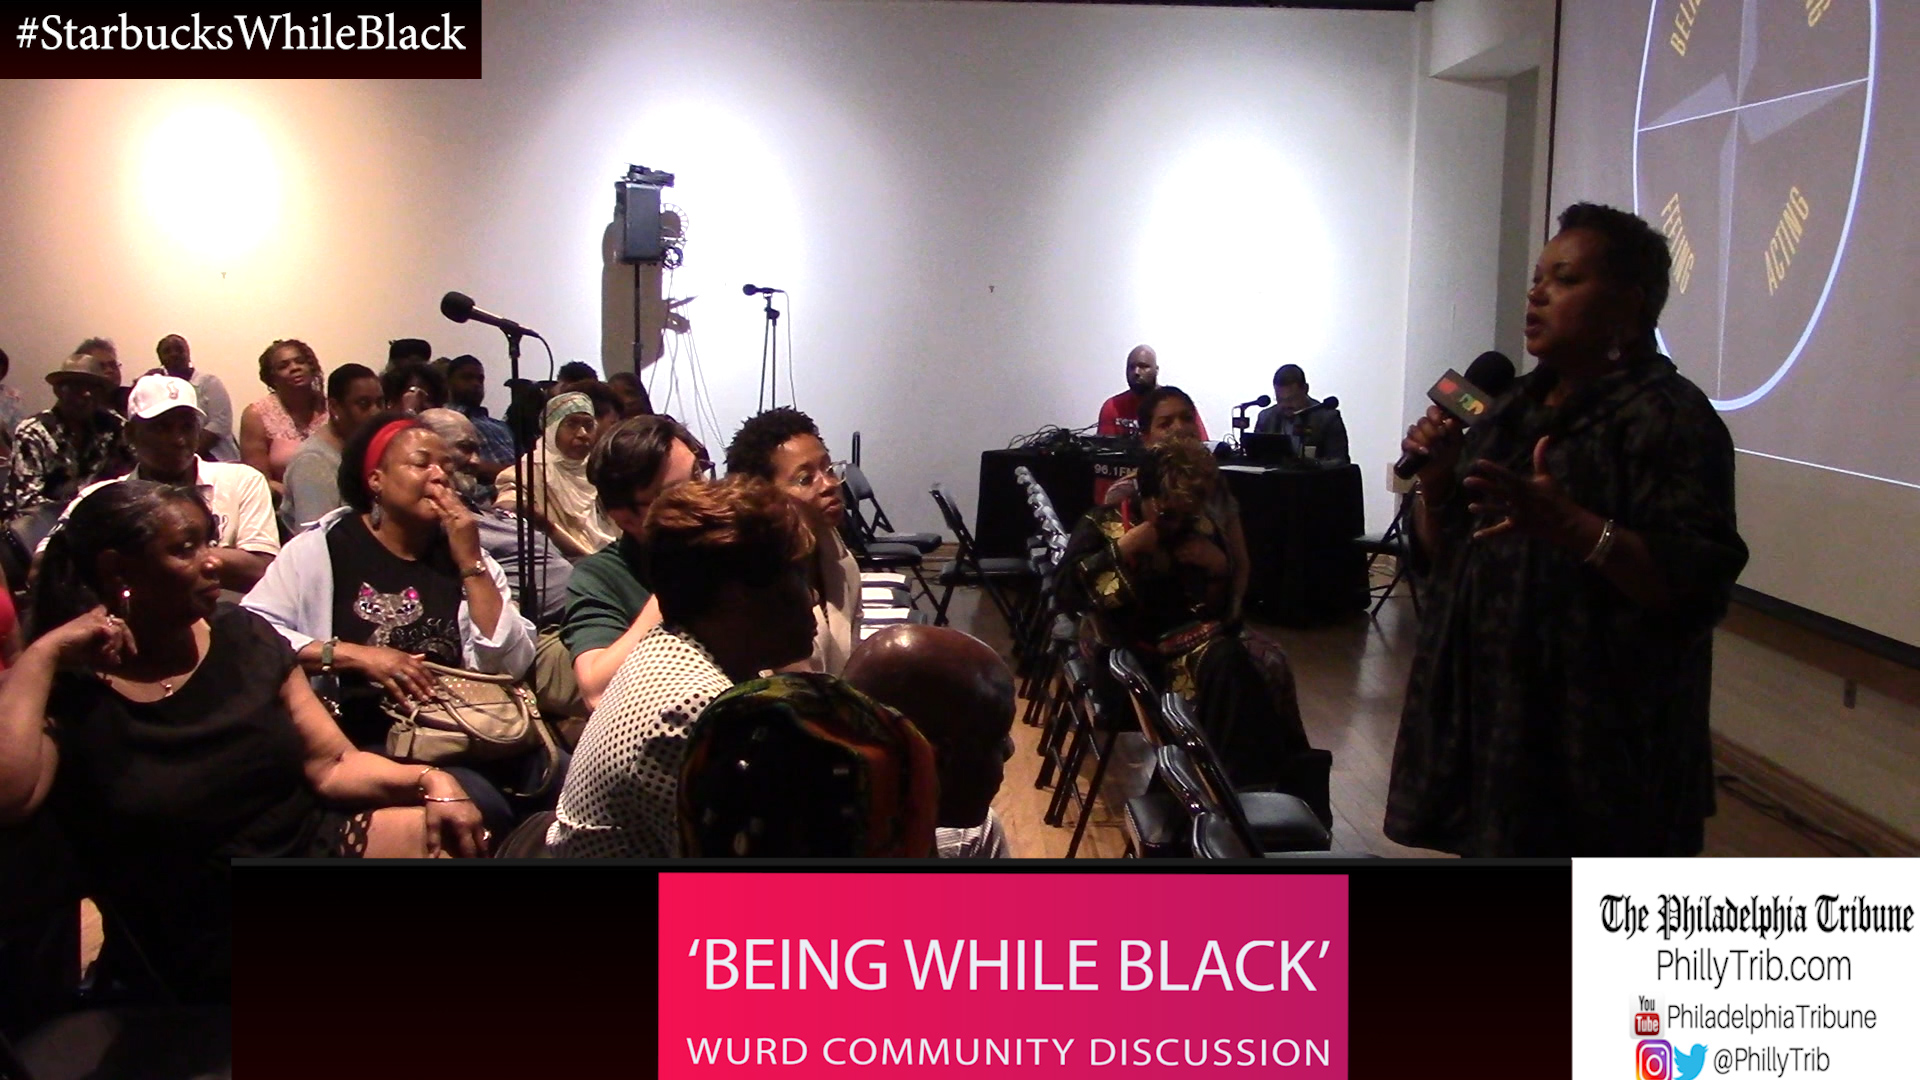 05/31/18 : #StarbucksWhileBlack prompts 'Being While Black' WURD Radio community discussion